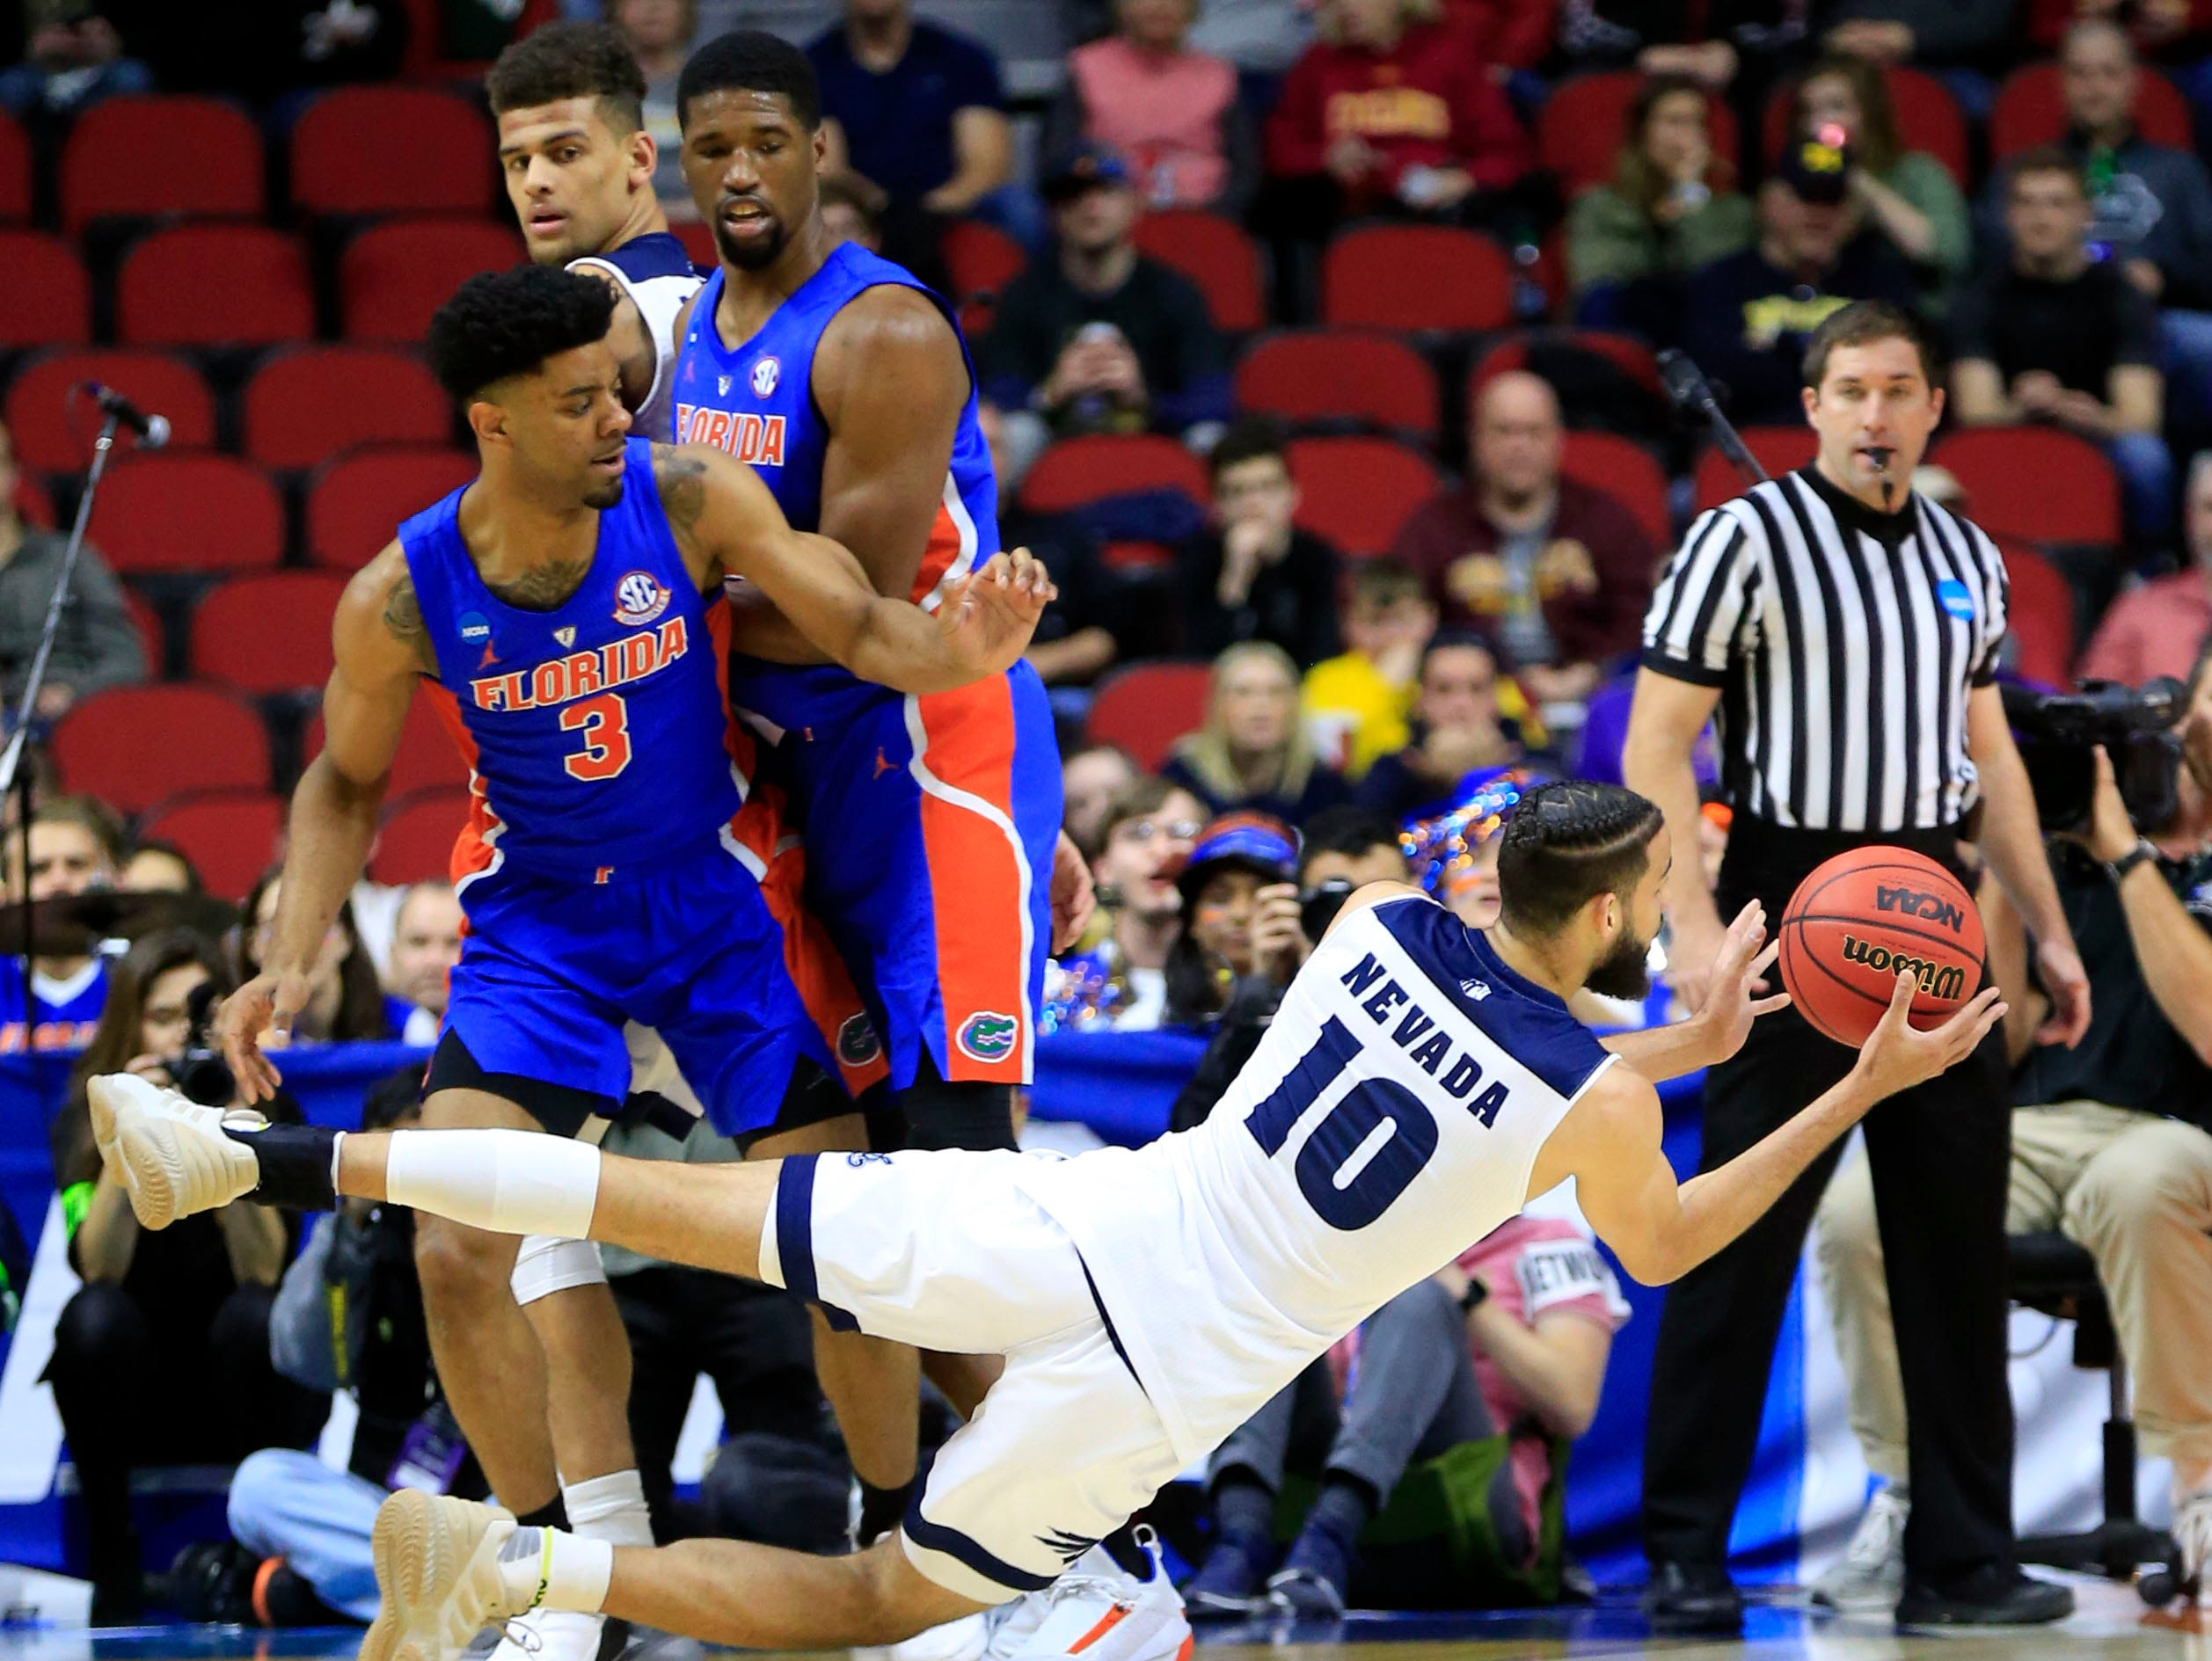 Nevada forward Caleb Martin passes as Florida guard Jalen Hudson defends during their NCAA Division I Men's Basketball Championship First Round game on Thursday, March 21, 2019 in Des Moines.